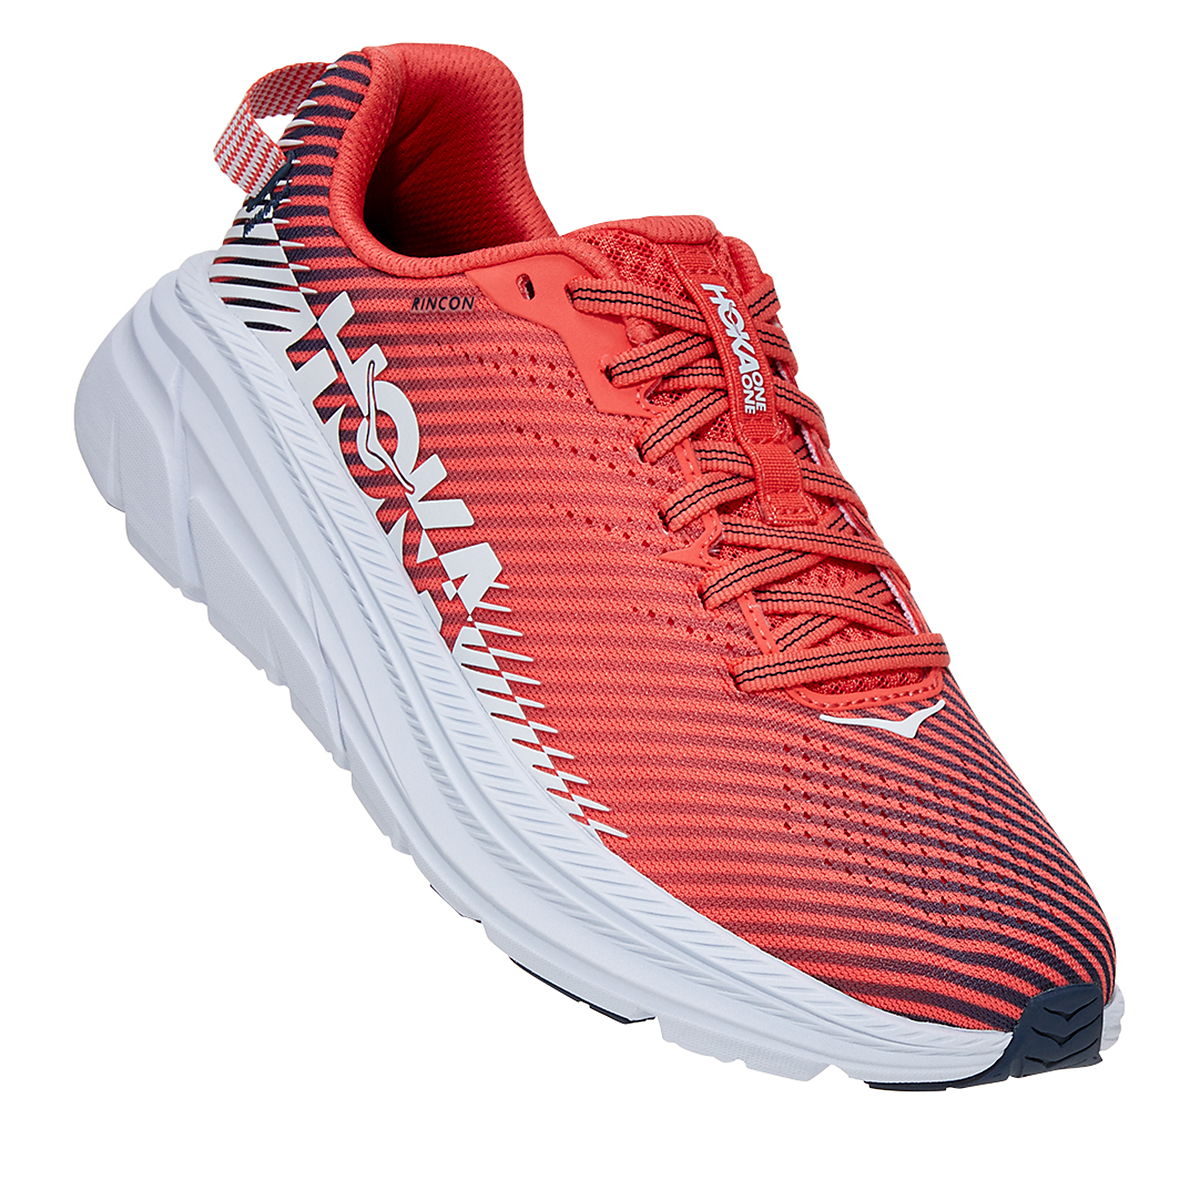 Women's Hoka One One Rincon 2 Running Shoe - Color: Hot Coral/White - Size: 5 - Width: Regular, Hot Coral/White, large, image 3